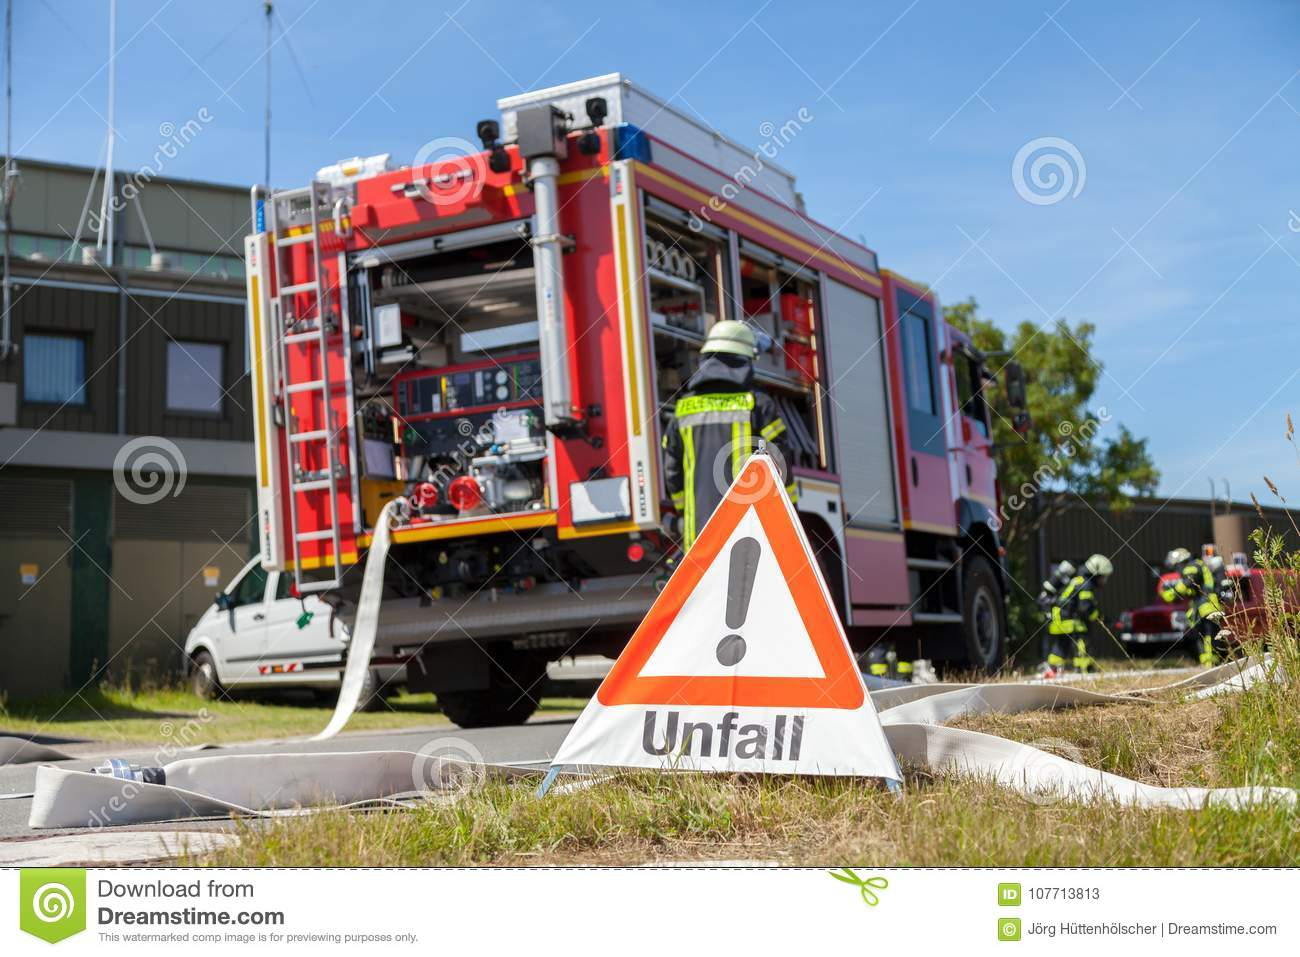 Unfall Stock Images - Download 25 Photos